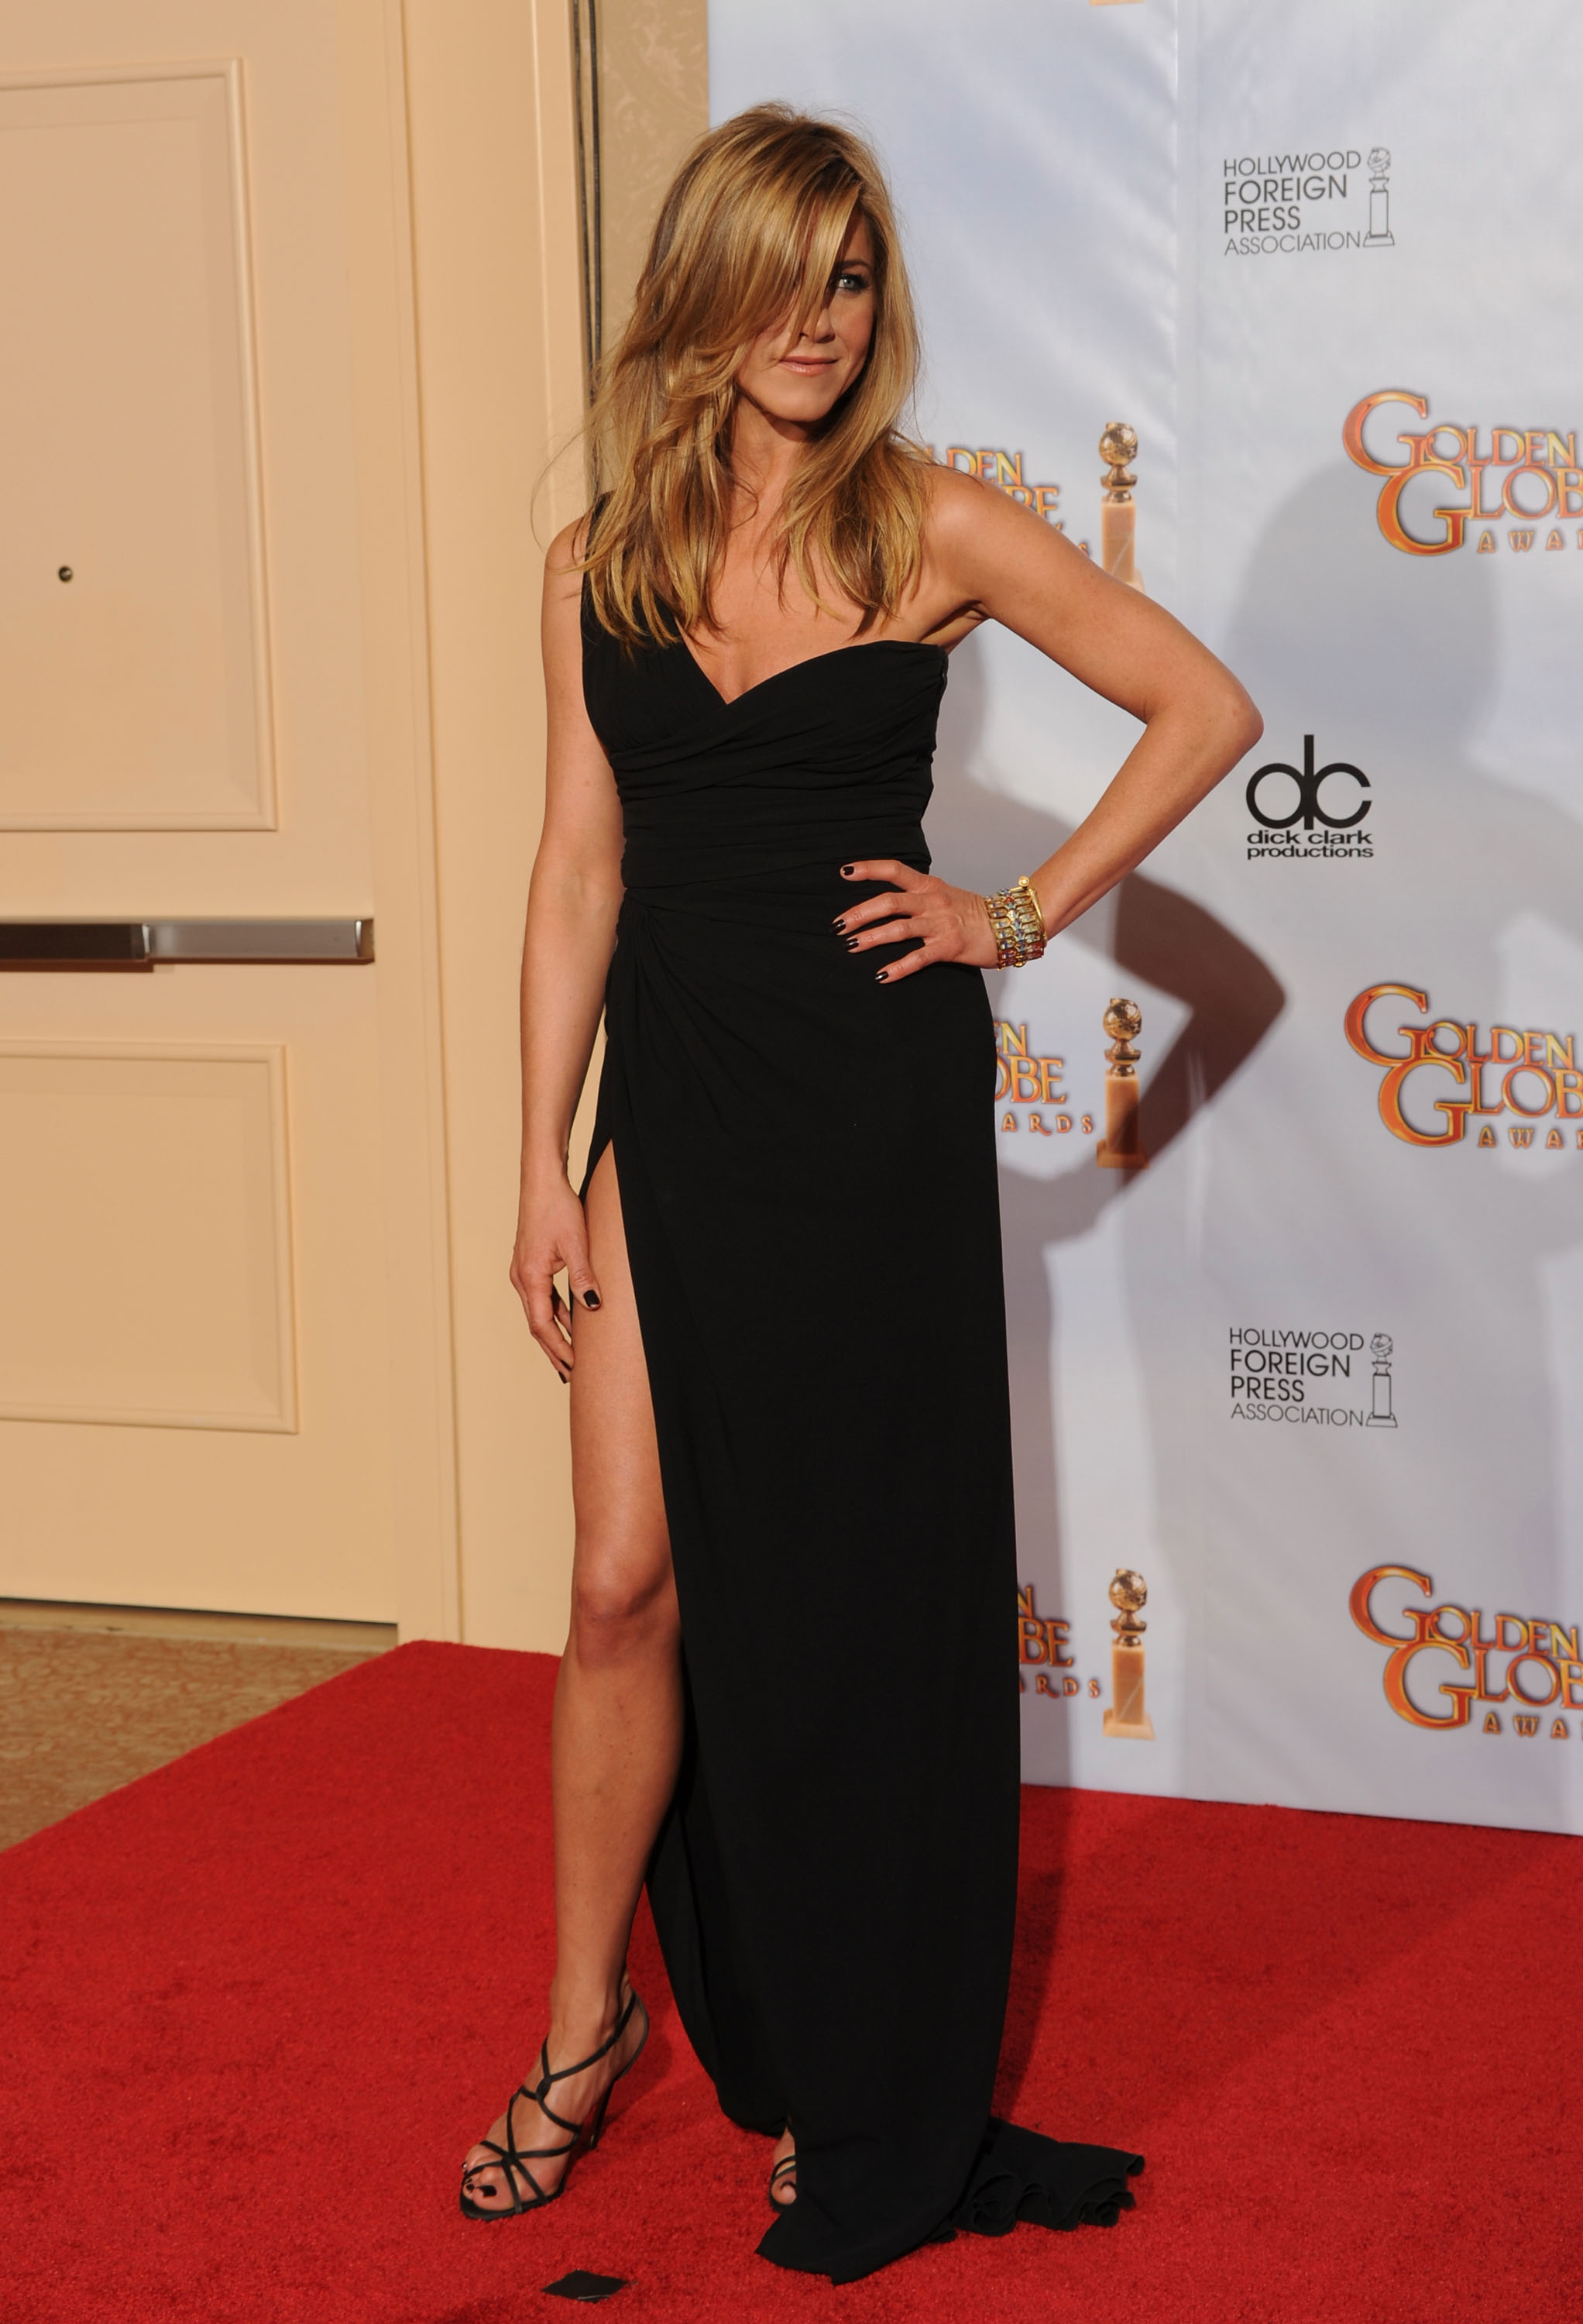 Jennifer Aniston 39 S Golden Globe Legs Photos Popsugar